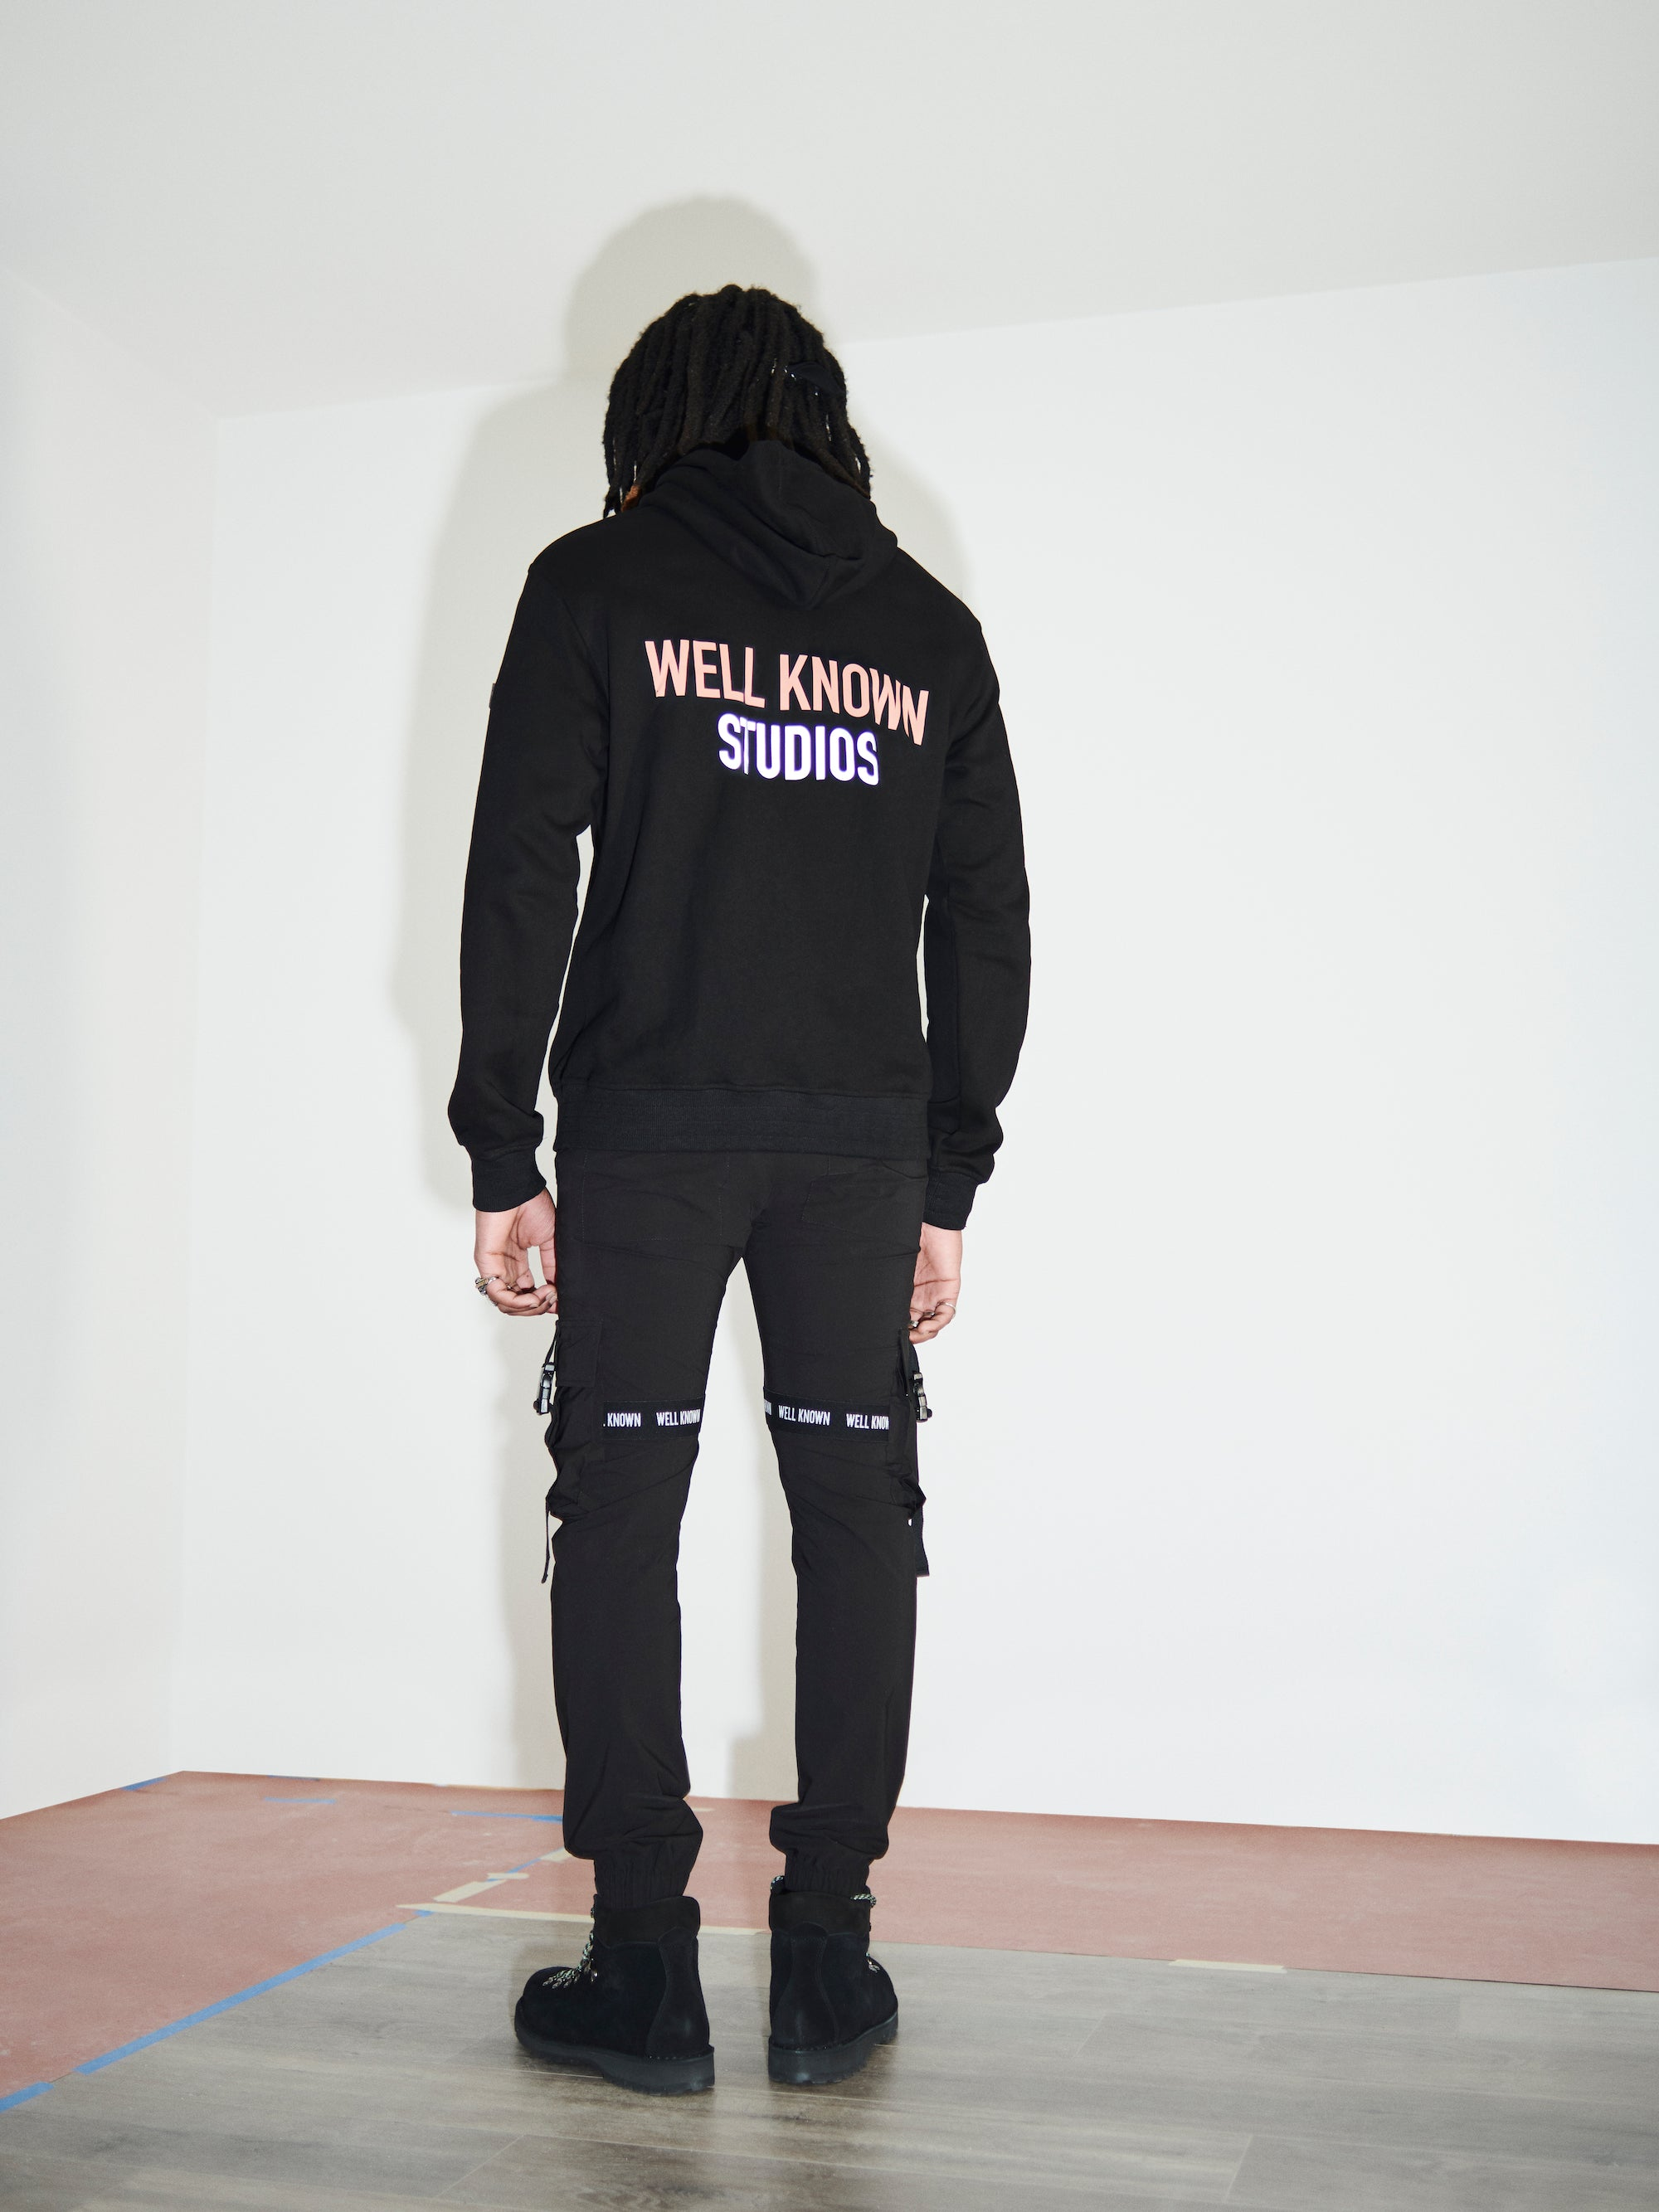 WELL KNOWN STUDIOS WINTER 2020 CAMPAIGN